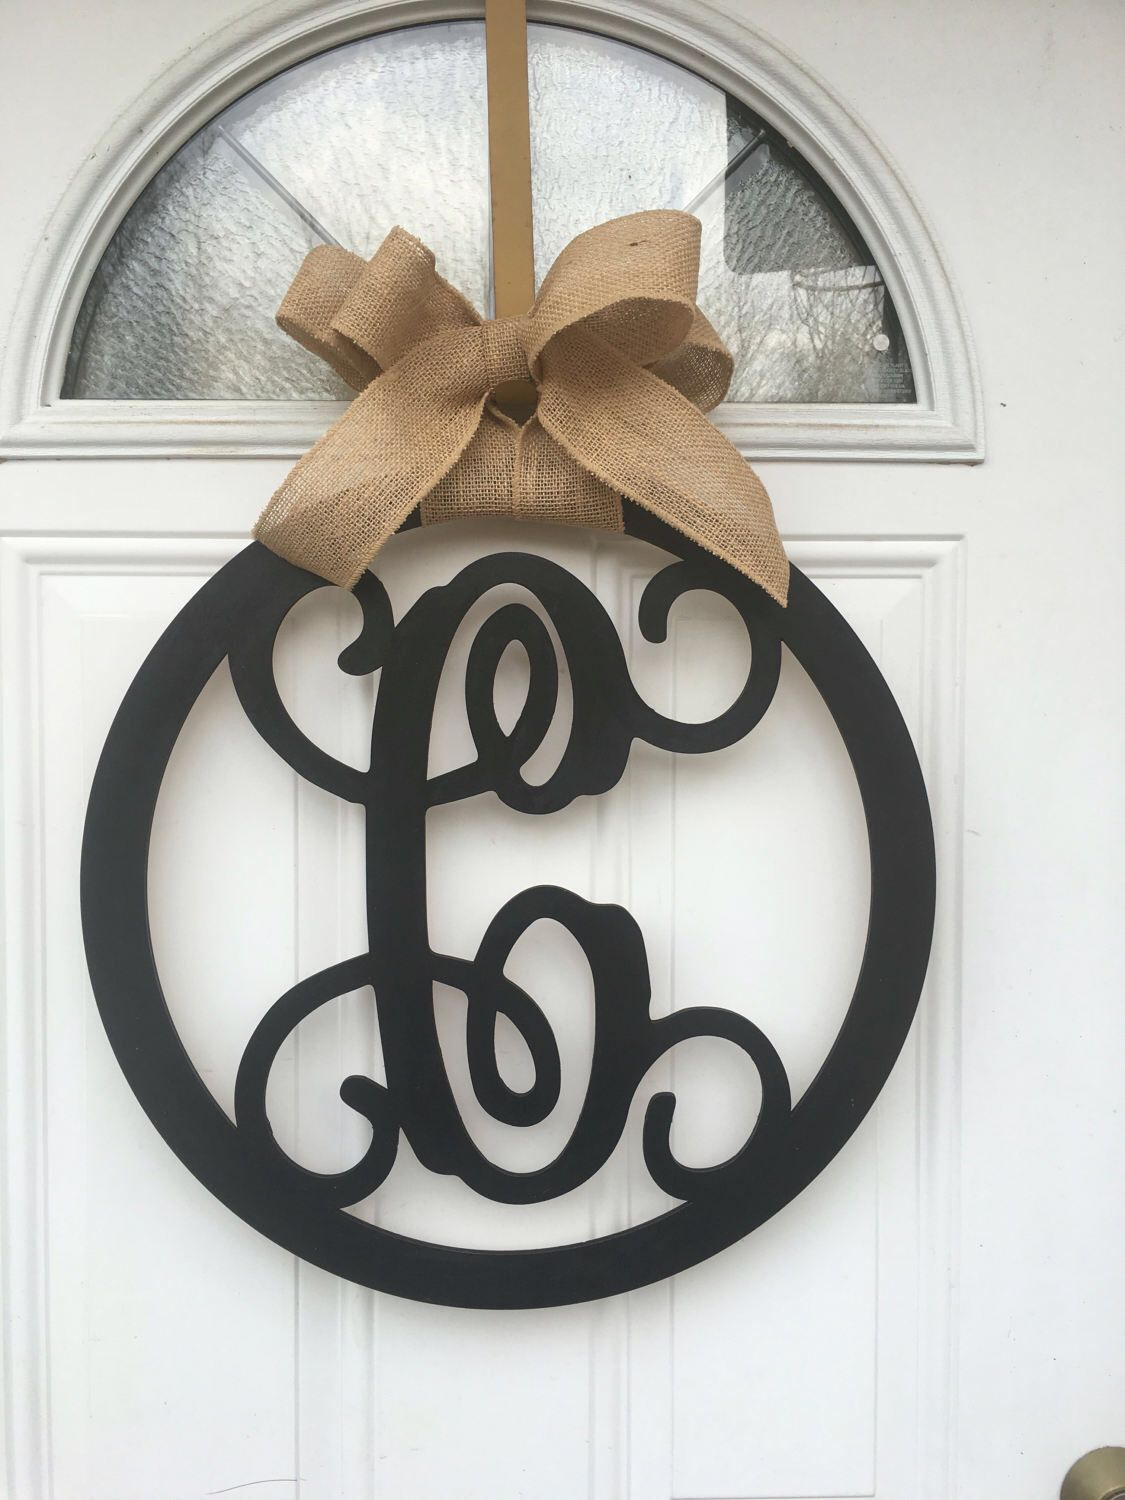 Metal Monogram Letters For Wall A Personal Favorite From My Etsy Shop Httpswww.etsylisting